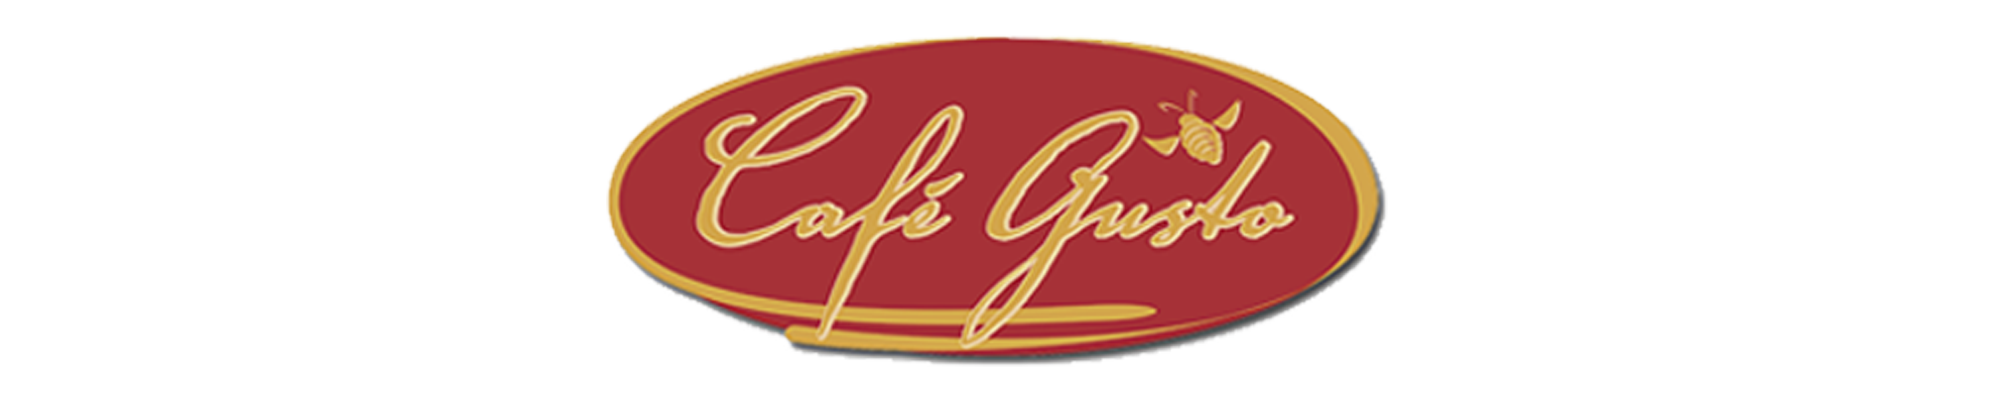 Welcome to Cafe Gust